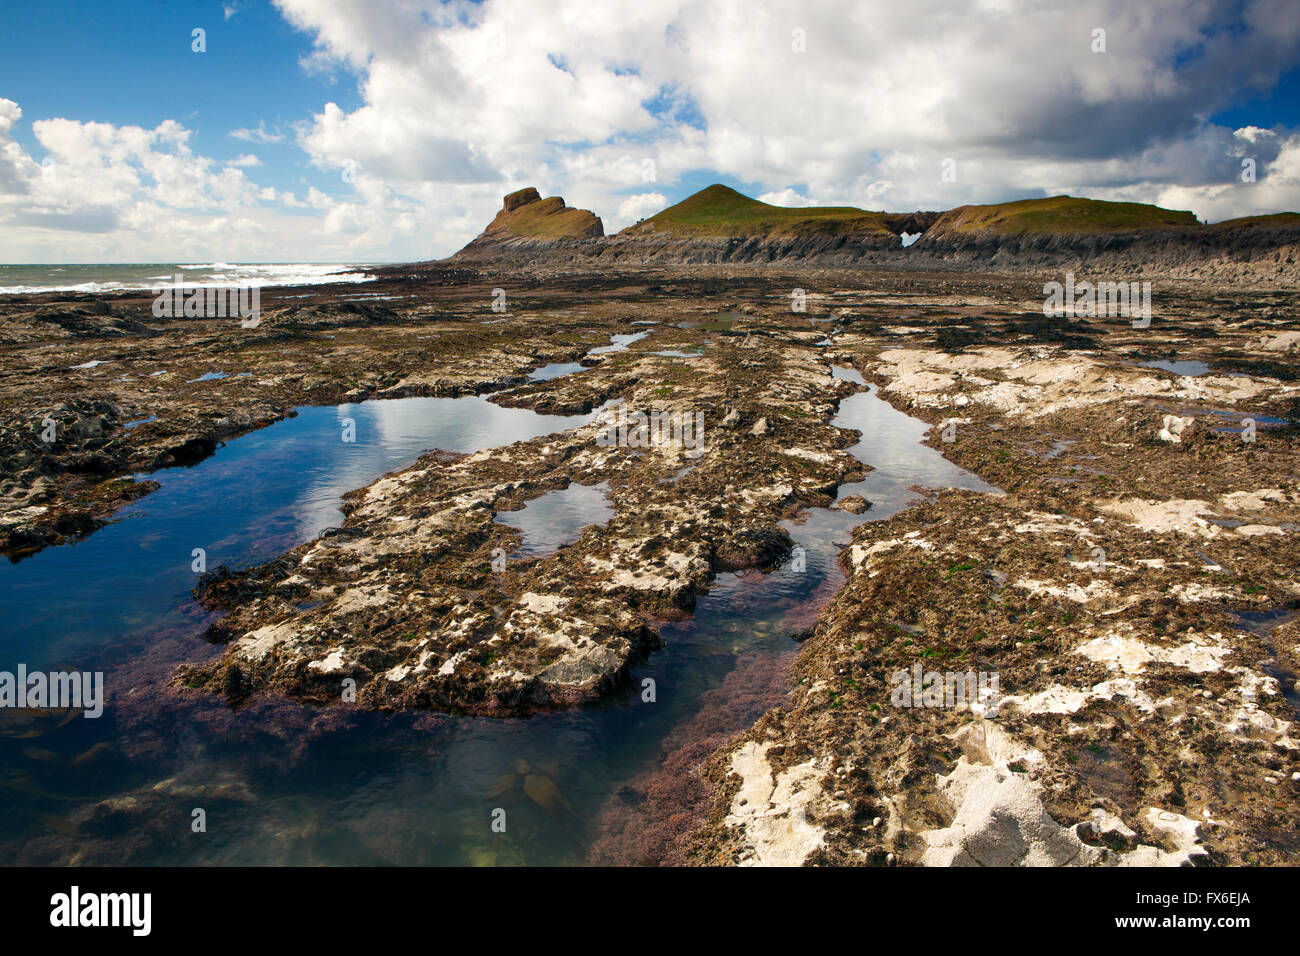 Low tide rock pool at Worm's Head, Gower peninsula, Wales - Stock Image